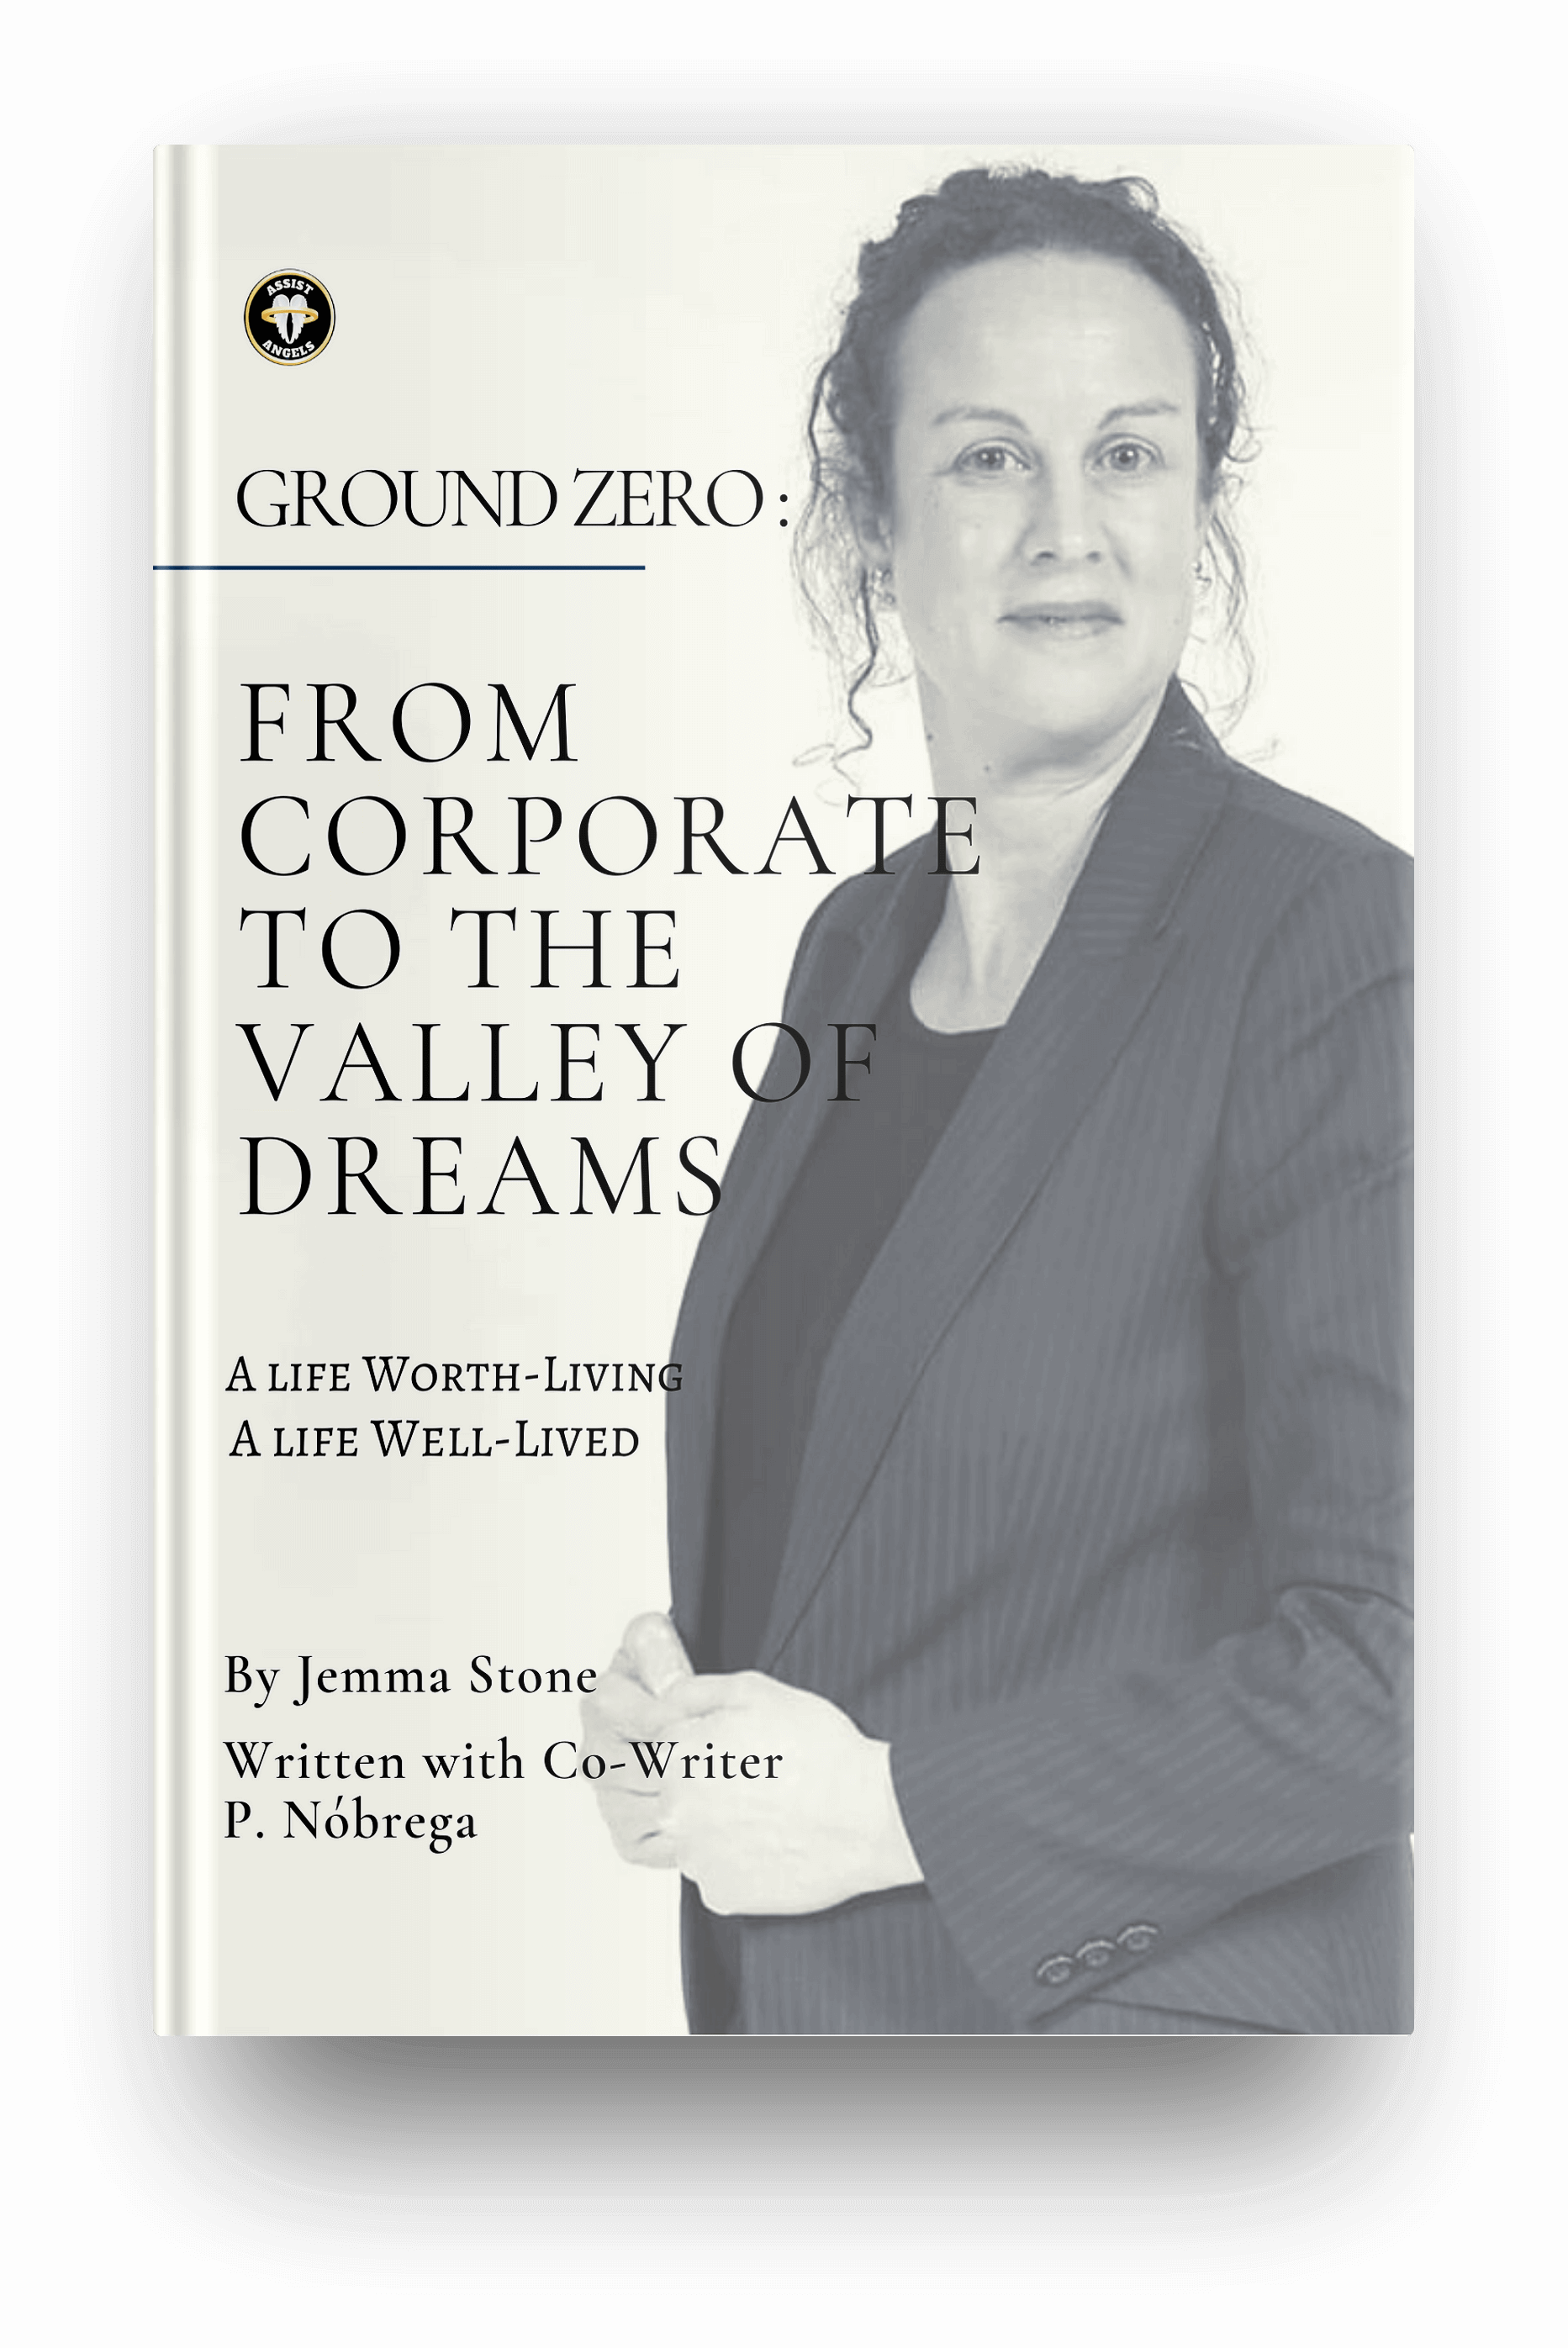 ground zero: from corporate to valley of dreams, prosynch